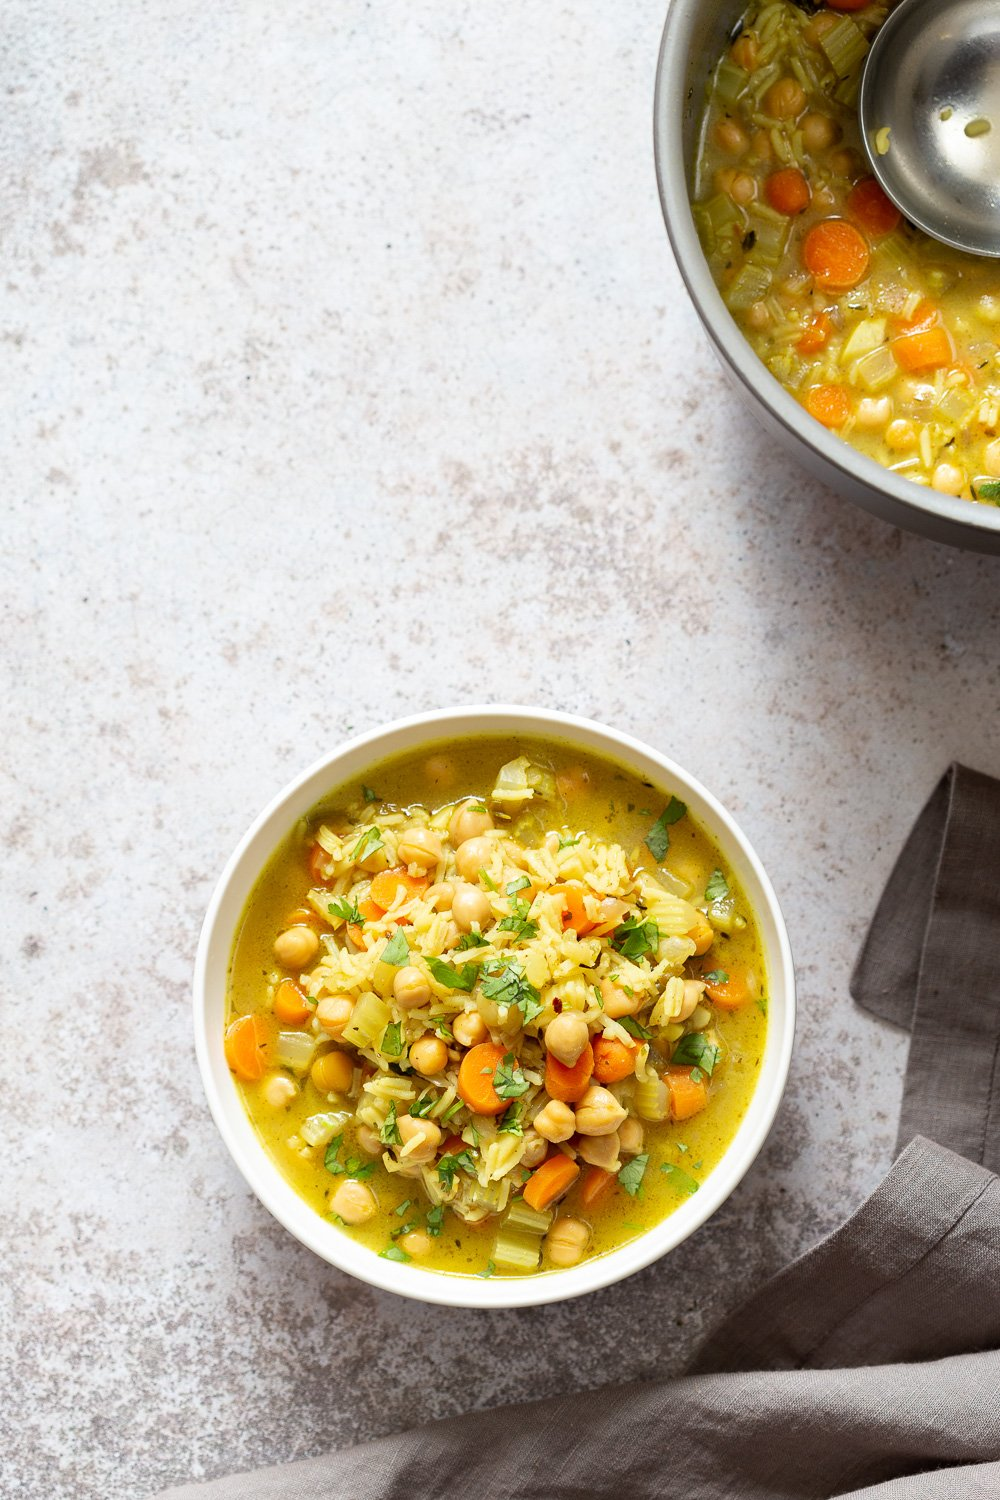 Comforting and Healing Vegan Chickpea Rice Soup with Veggies. A glutenfree variation of Vegan Chicken Noodle Soup. Easy 1 Pot 30 minute meal. #vegan #veganricha #Glutenfree #Nutfree #Recipe #Soyfreeoption